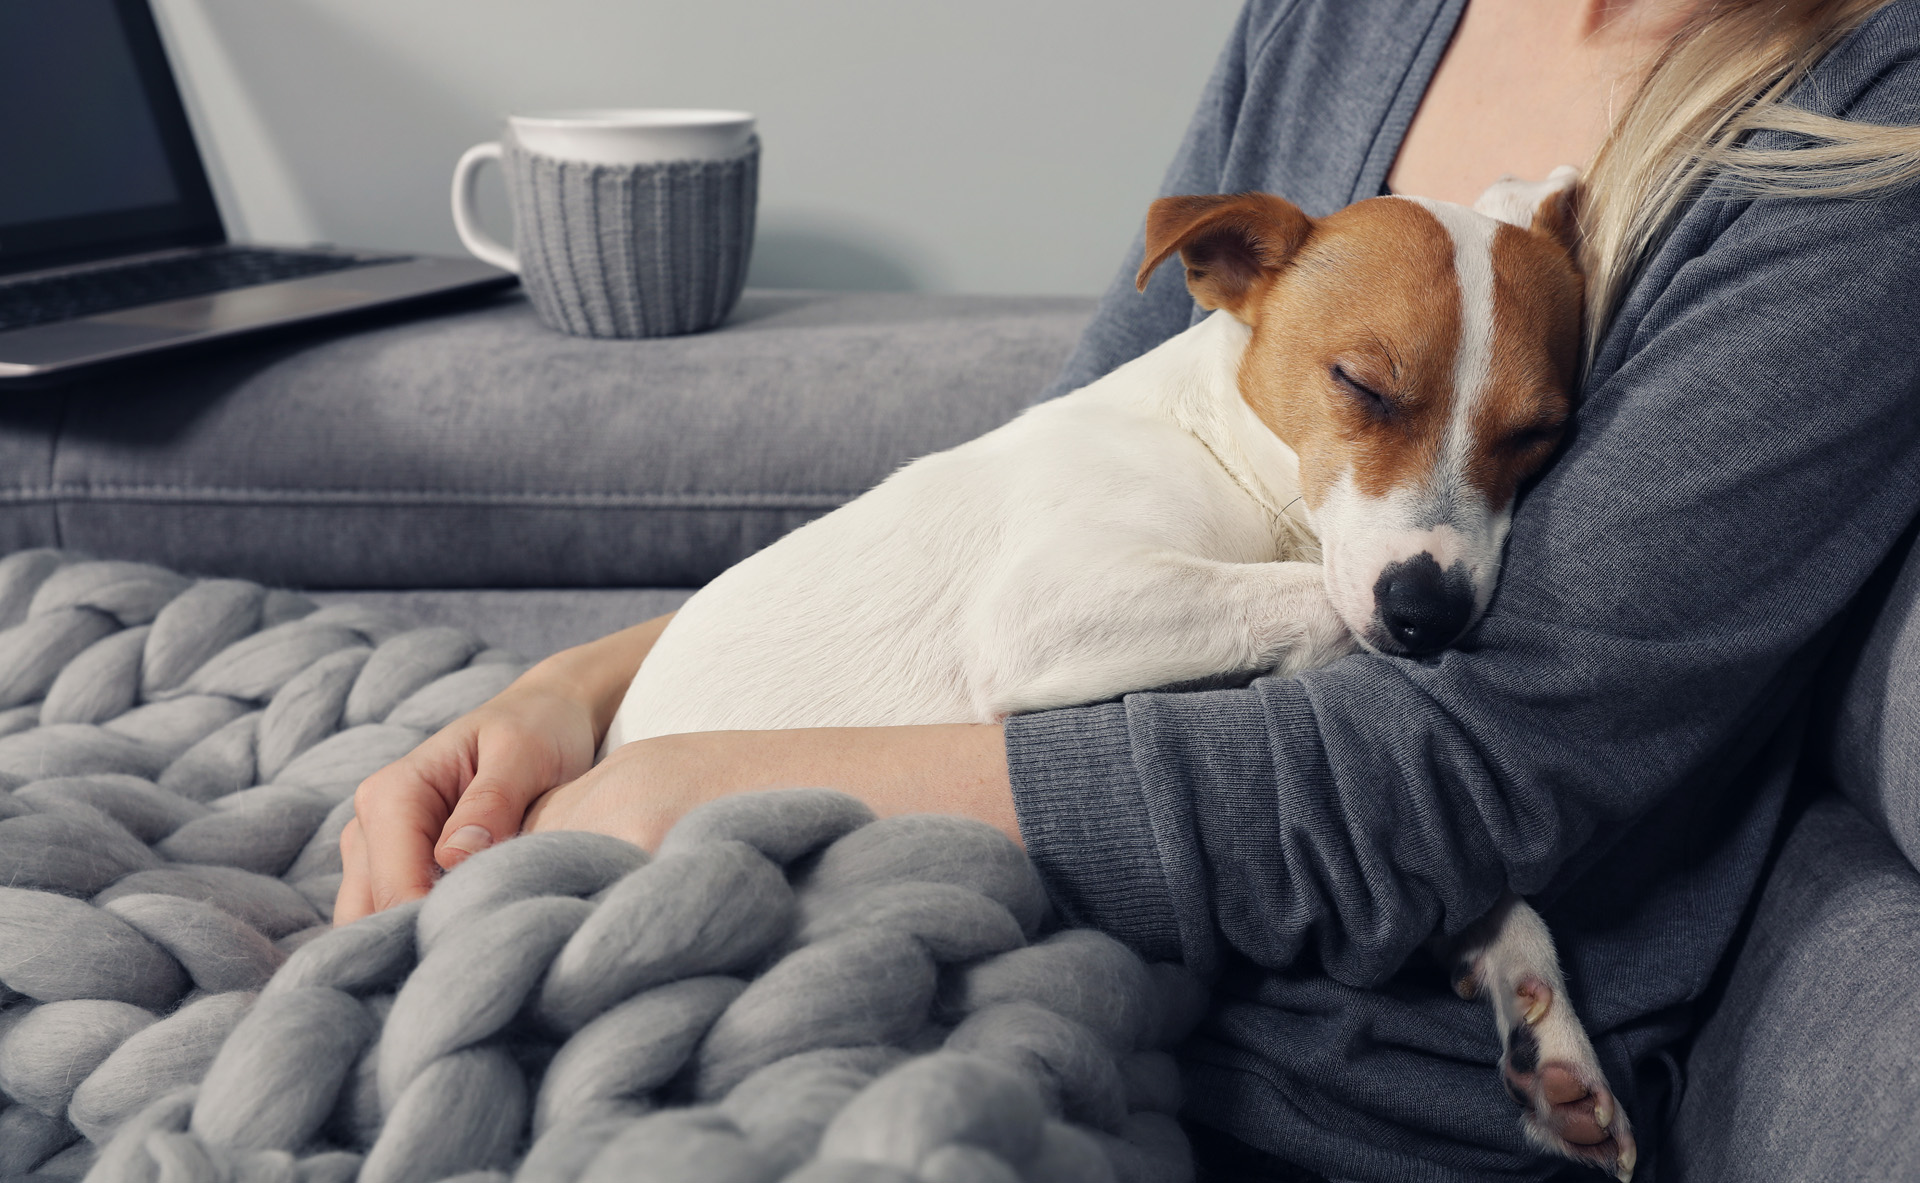 Dog asleep in owner's arms